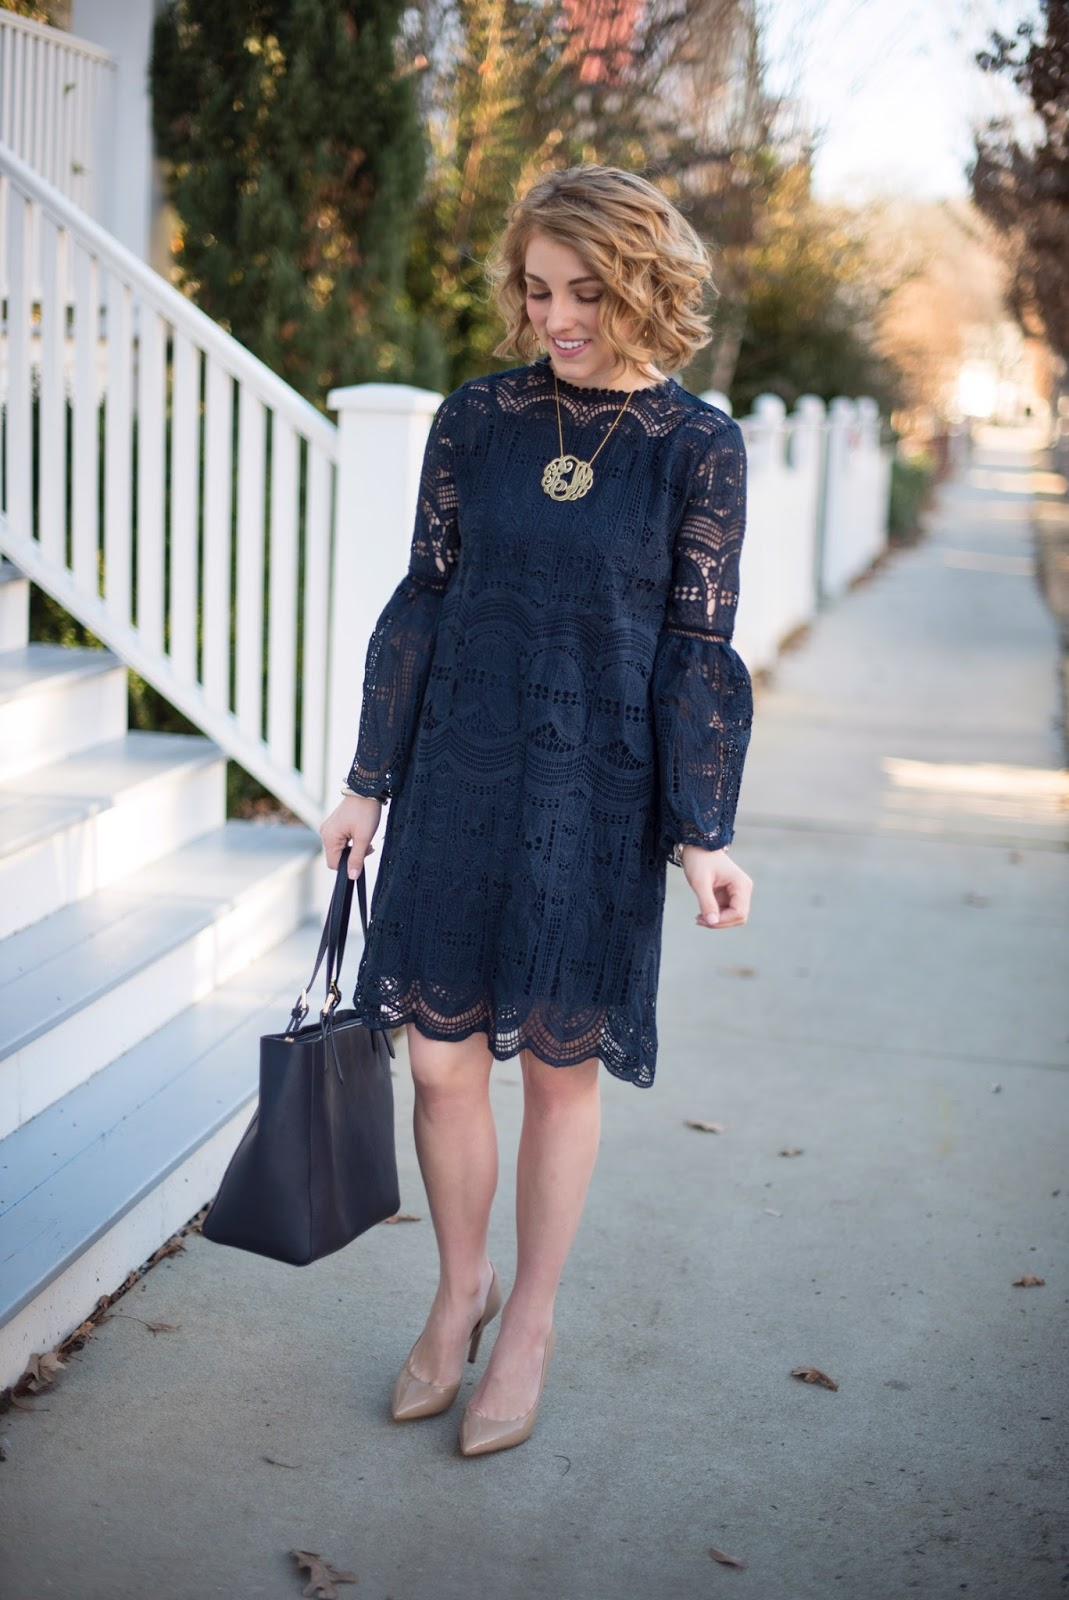 Bell Sleeve Dress - Something Delightful Blog